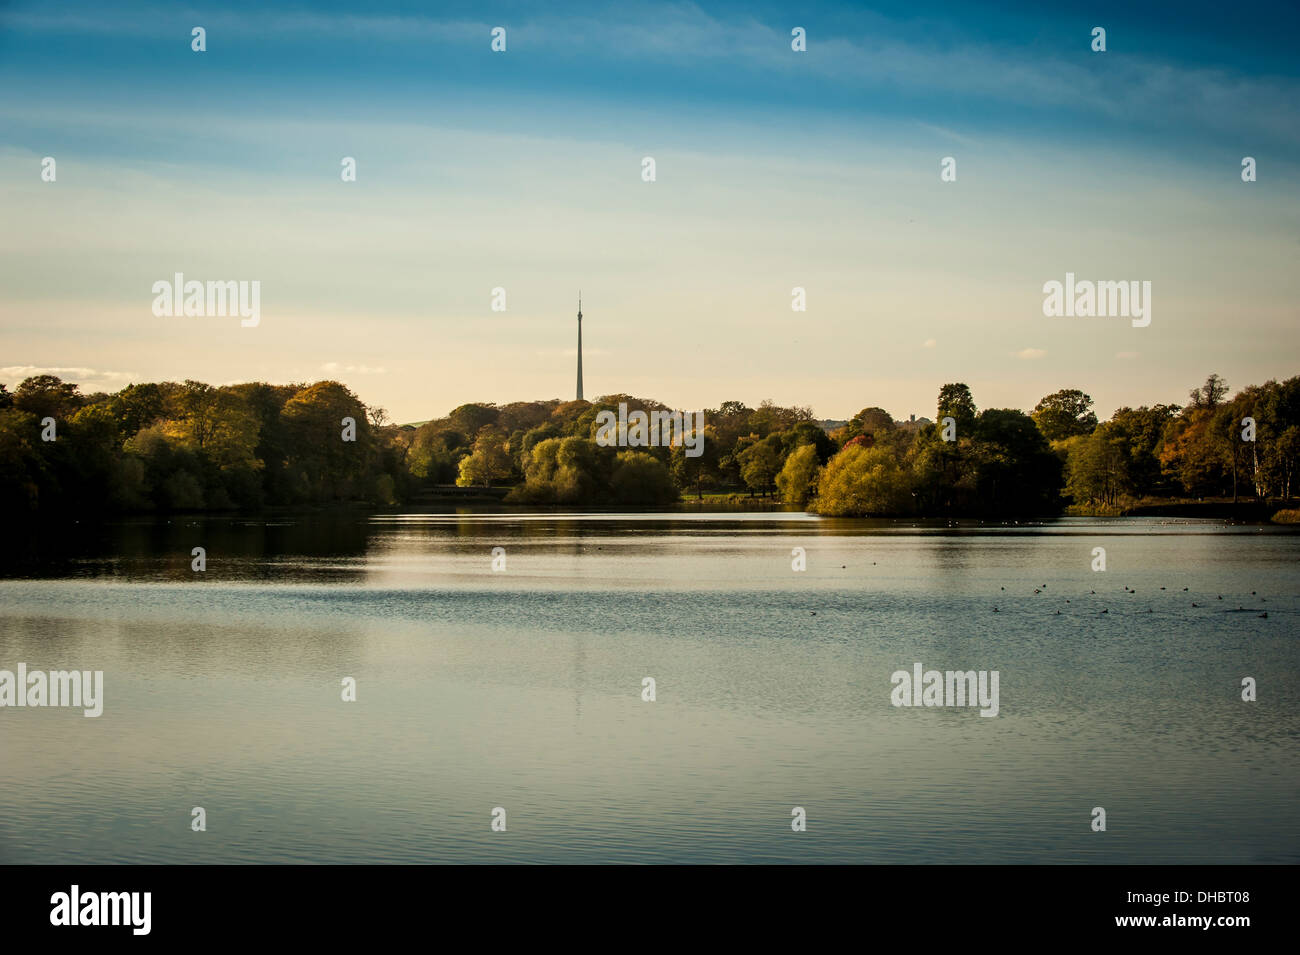 'Arqiva Tower' commonly known as Emley Moor Mast viewed from Yorkshire Sculpture Park, UK. - Stock Image